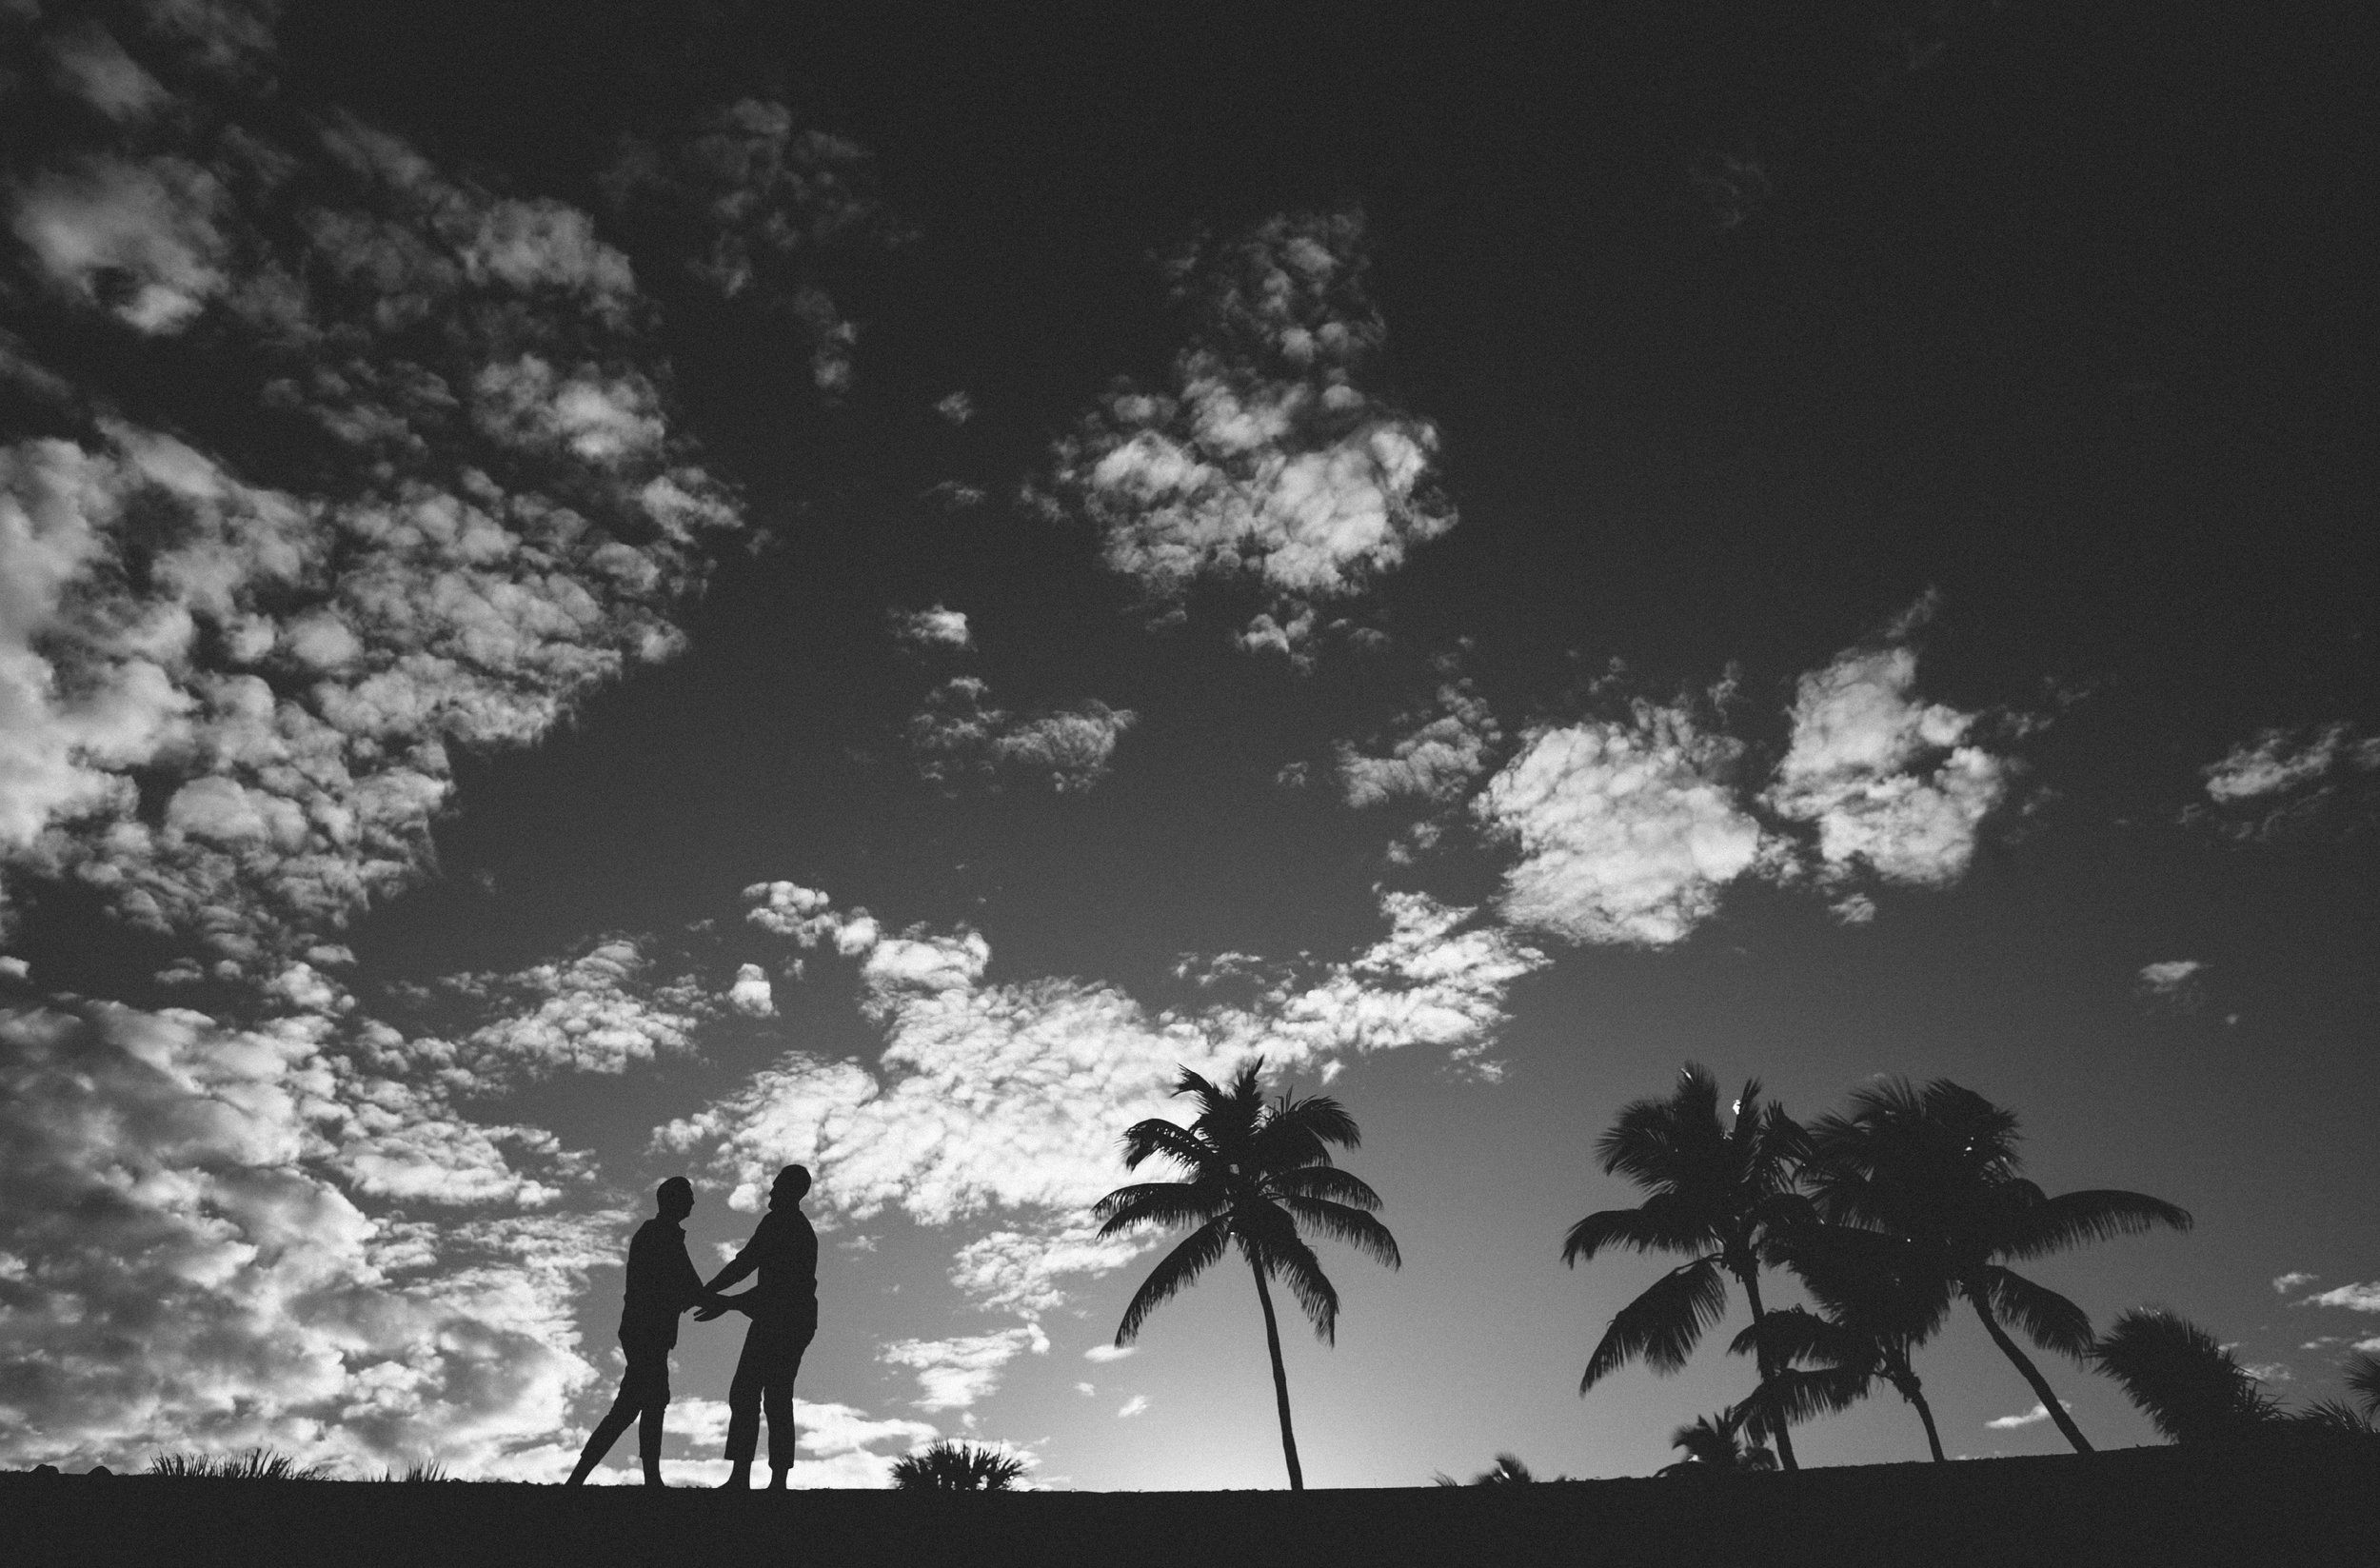 Josh + Craig South Pointe Park Miami Engagement Shoot24.jpg